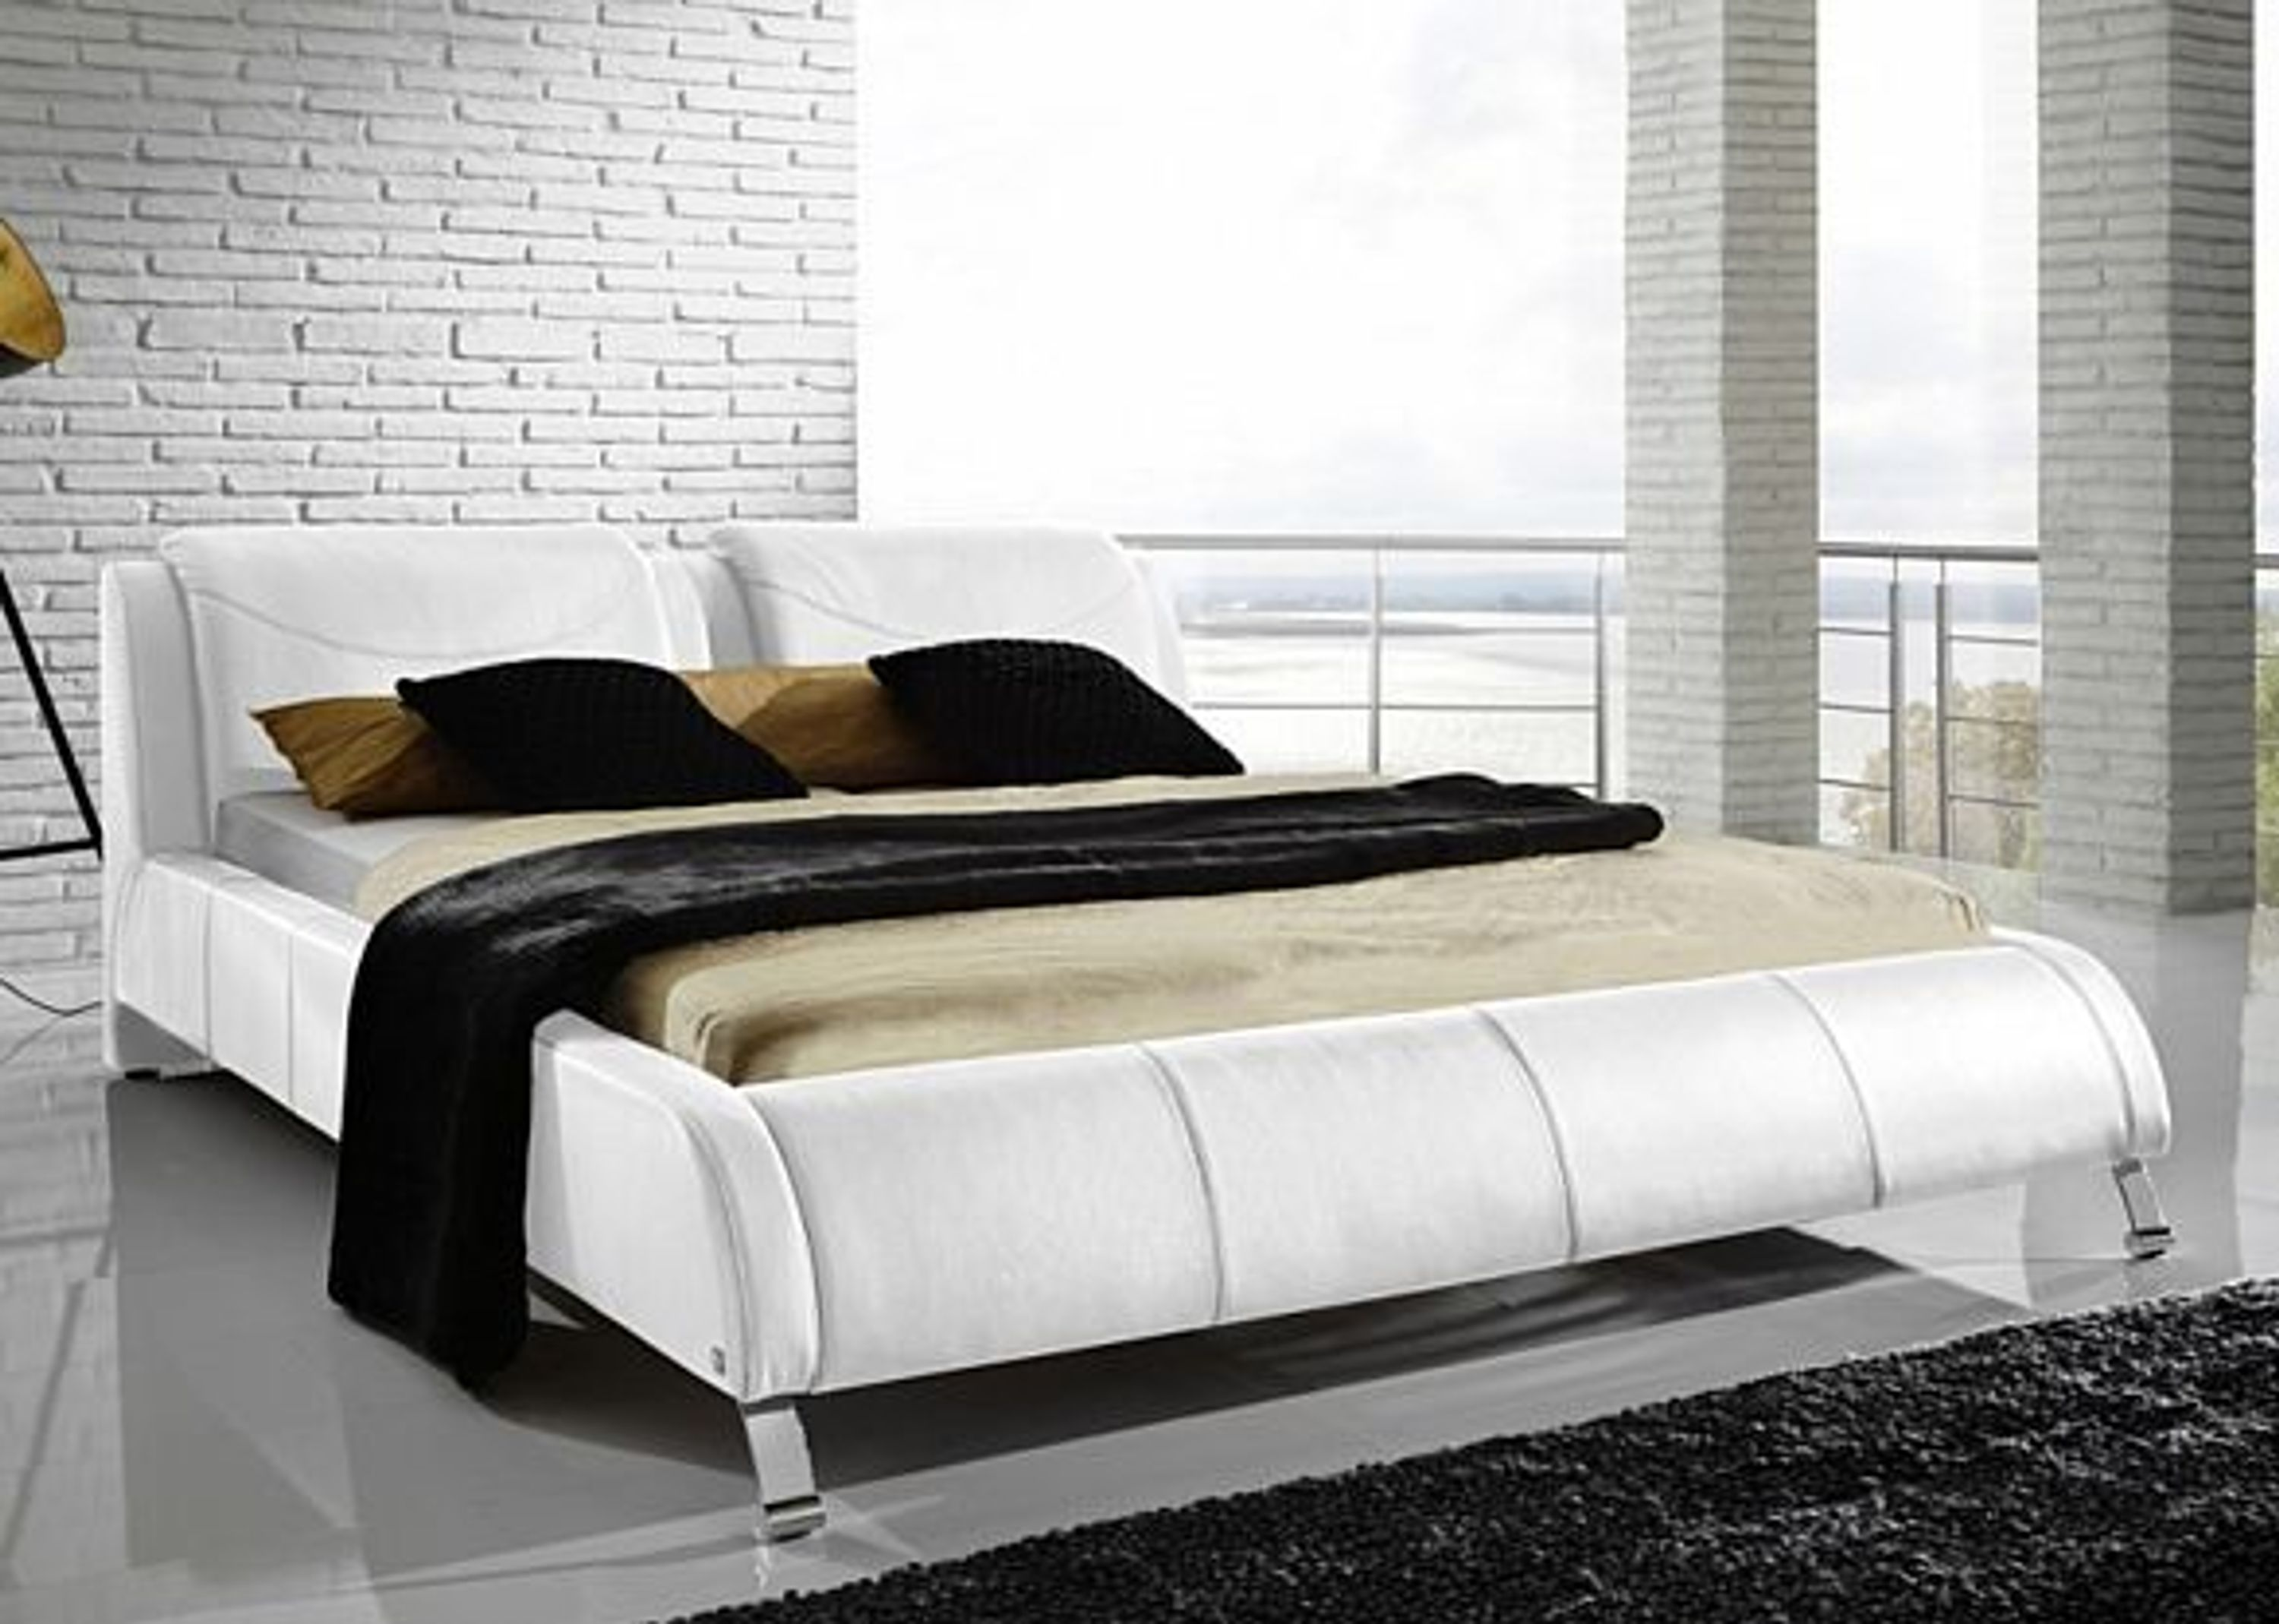 polsterbett bellini futonbett doppelbett lederbett wei. Black Bedroom Furniture Sets. Home Design Ideas